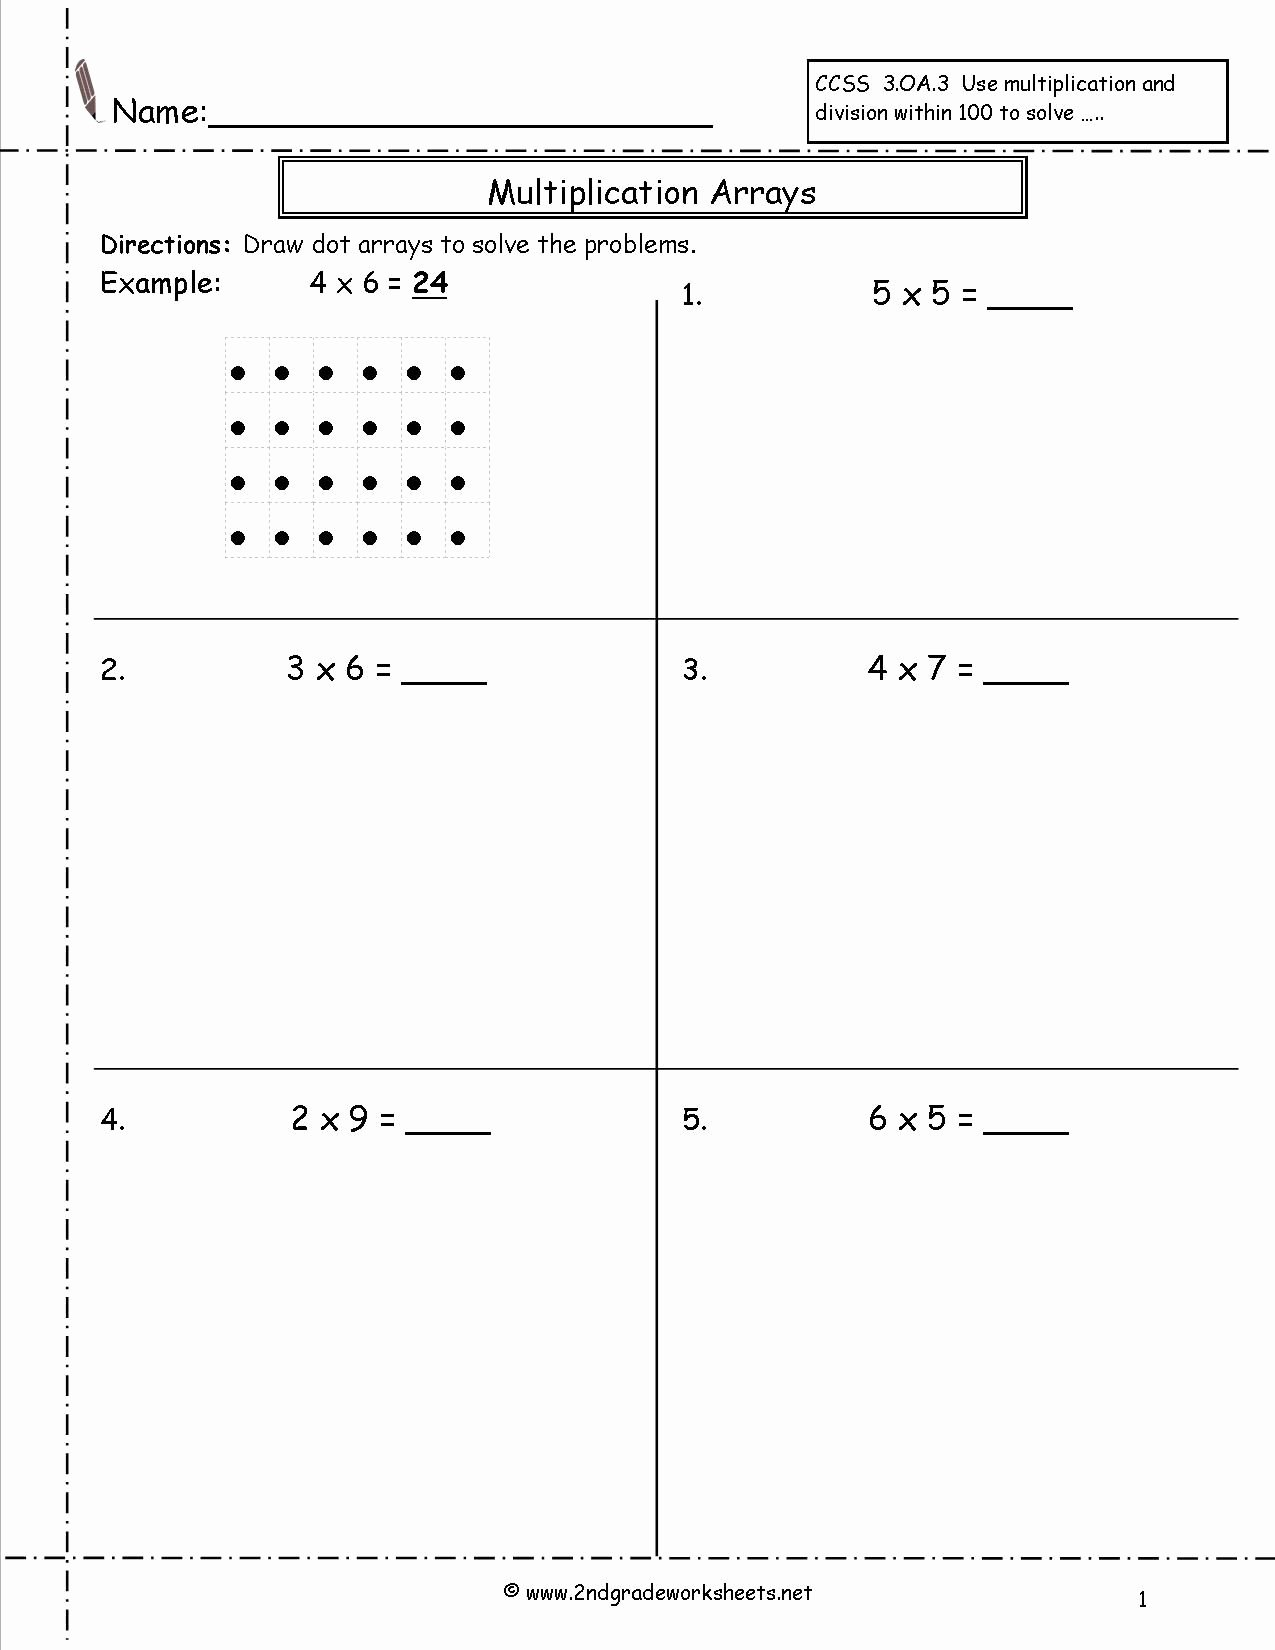 Array for Multiplication Worksheets Lovely Multiplication Array Worksheets